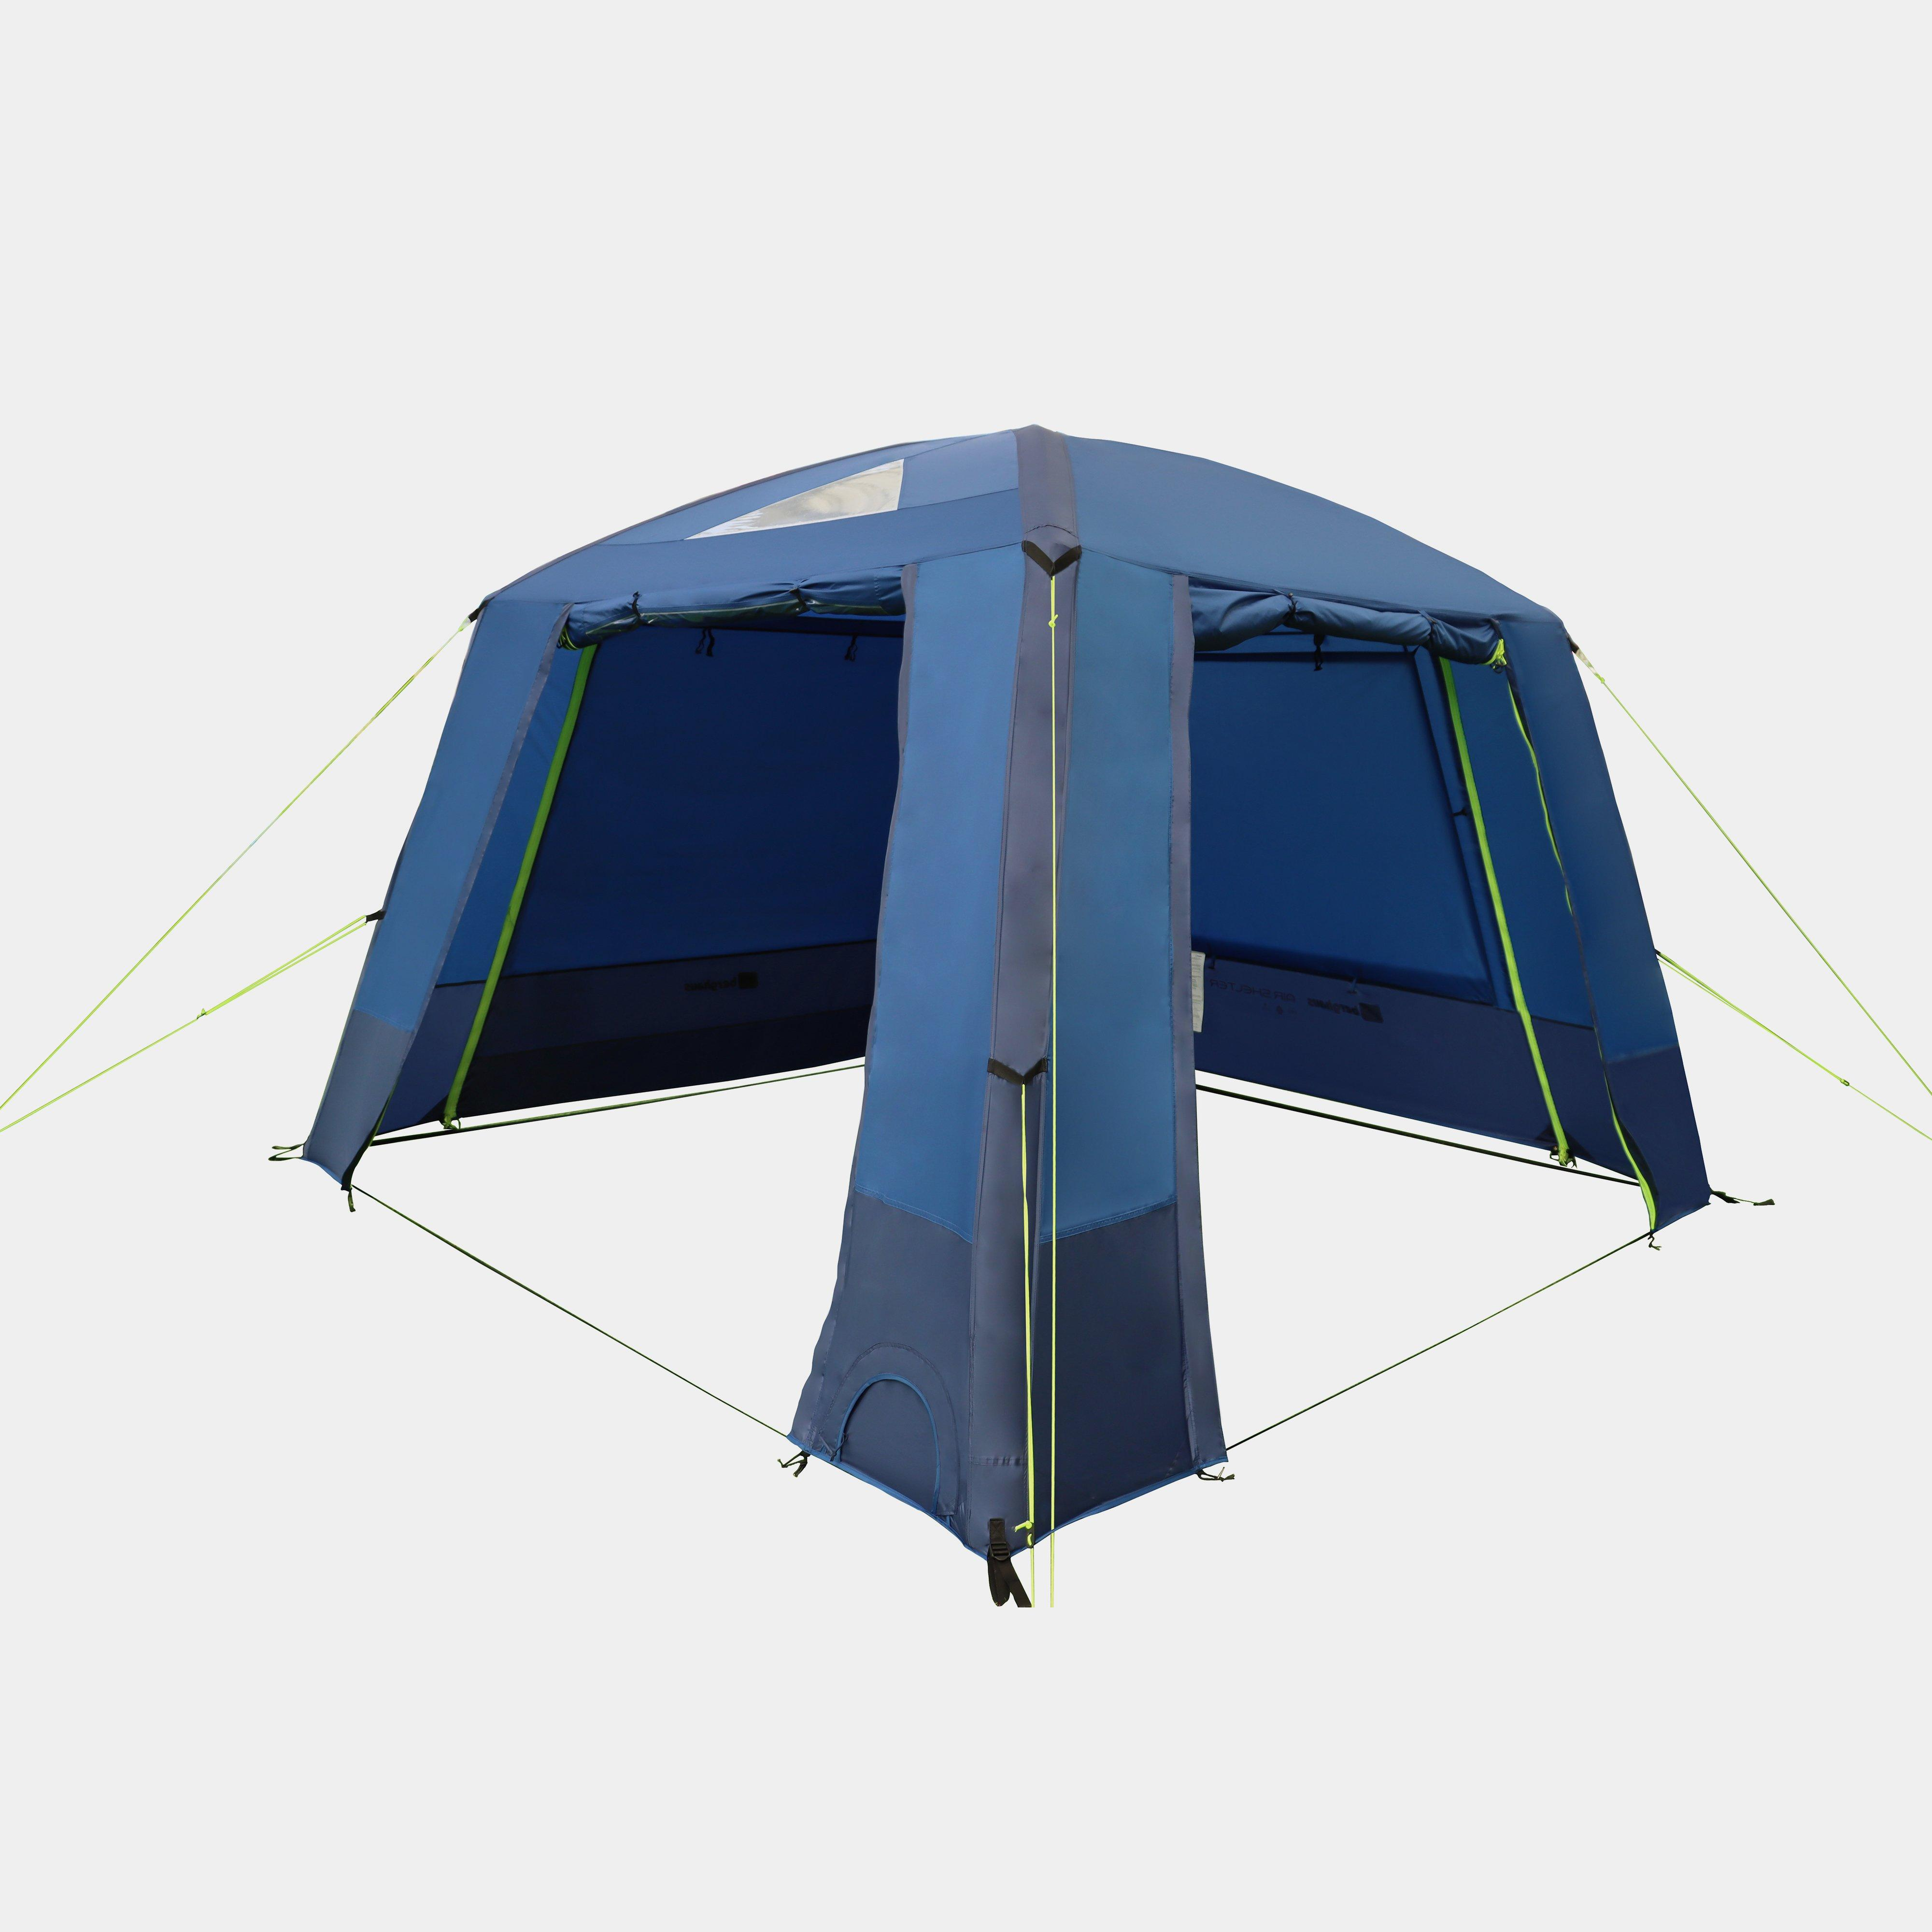 BERGHAUS Air Shelter & Berghaus Tents and Accessories | Blacks